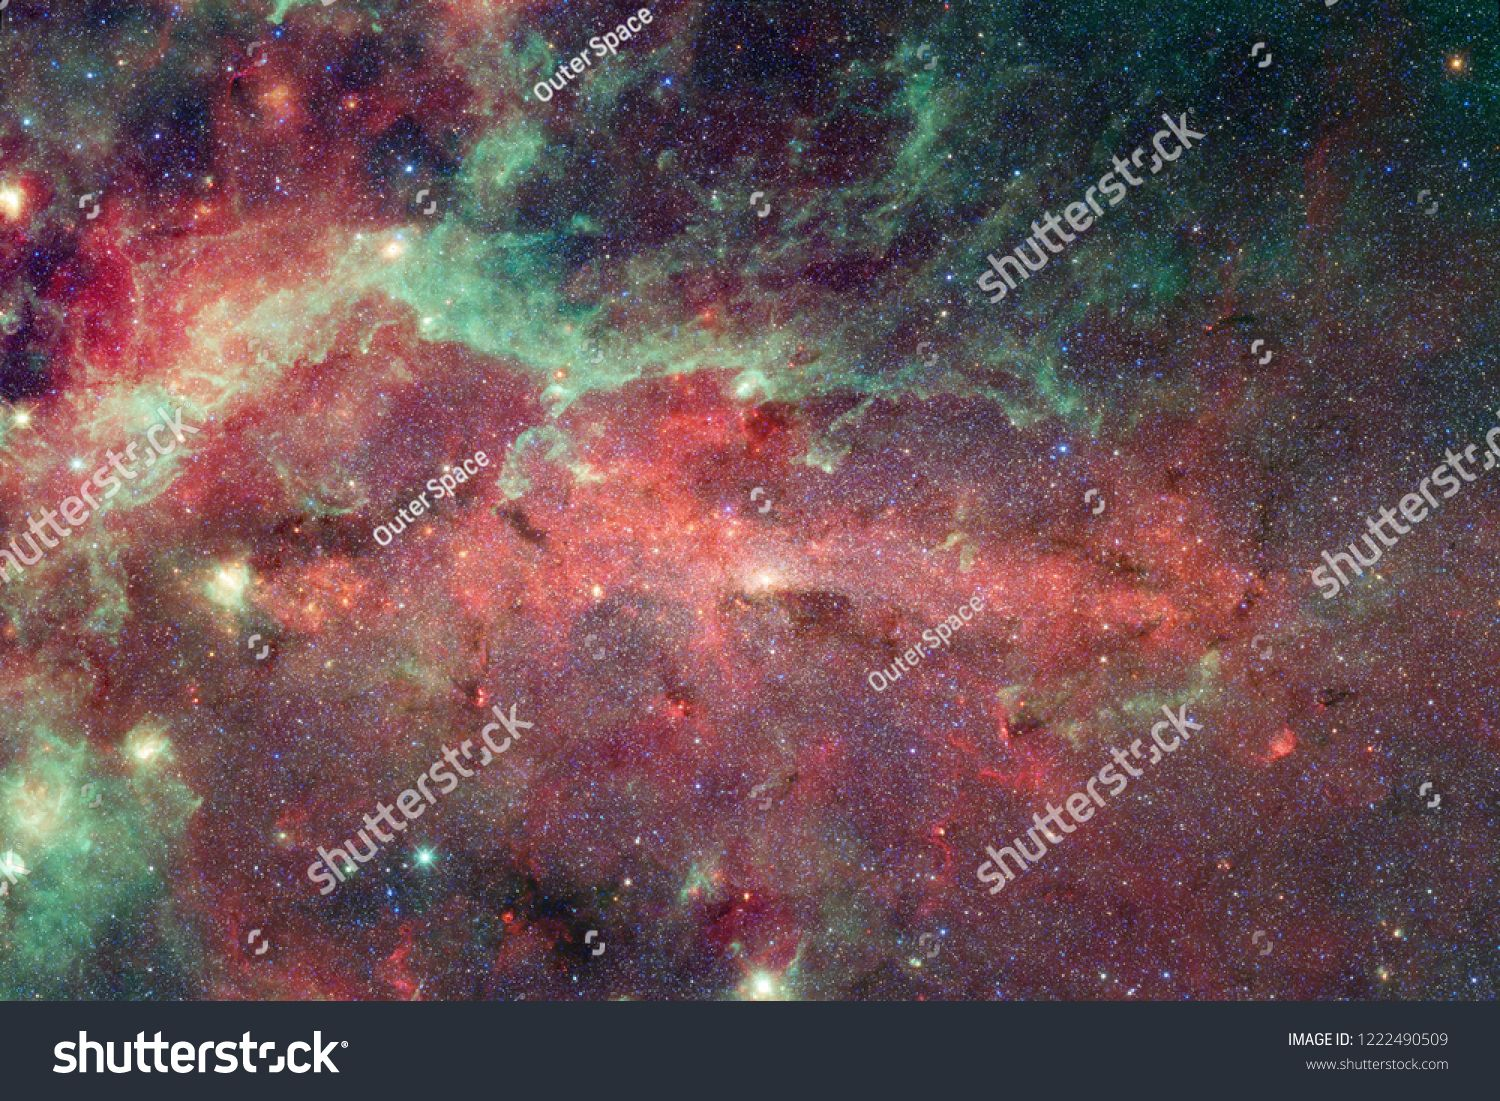 Deep Space Science Fiction Fantasy In High Resolution Ideal For Wallpaper Elements Of This Image Furnished By Nasa In 2020 Abstract Backgrounds Deep Space Abstract